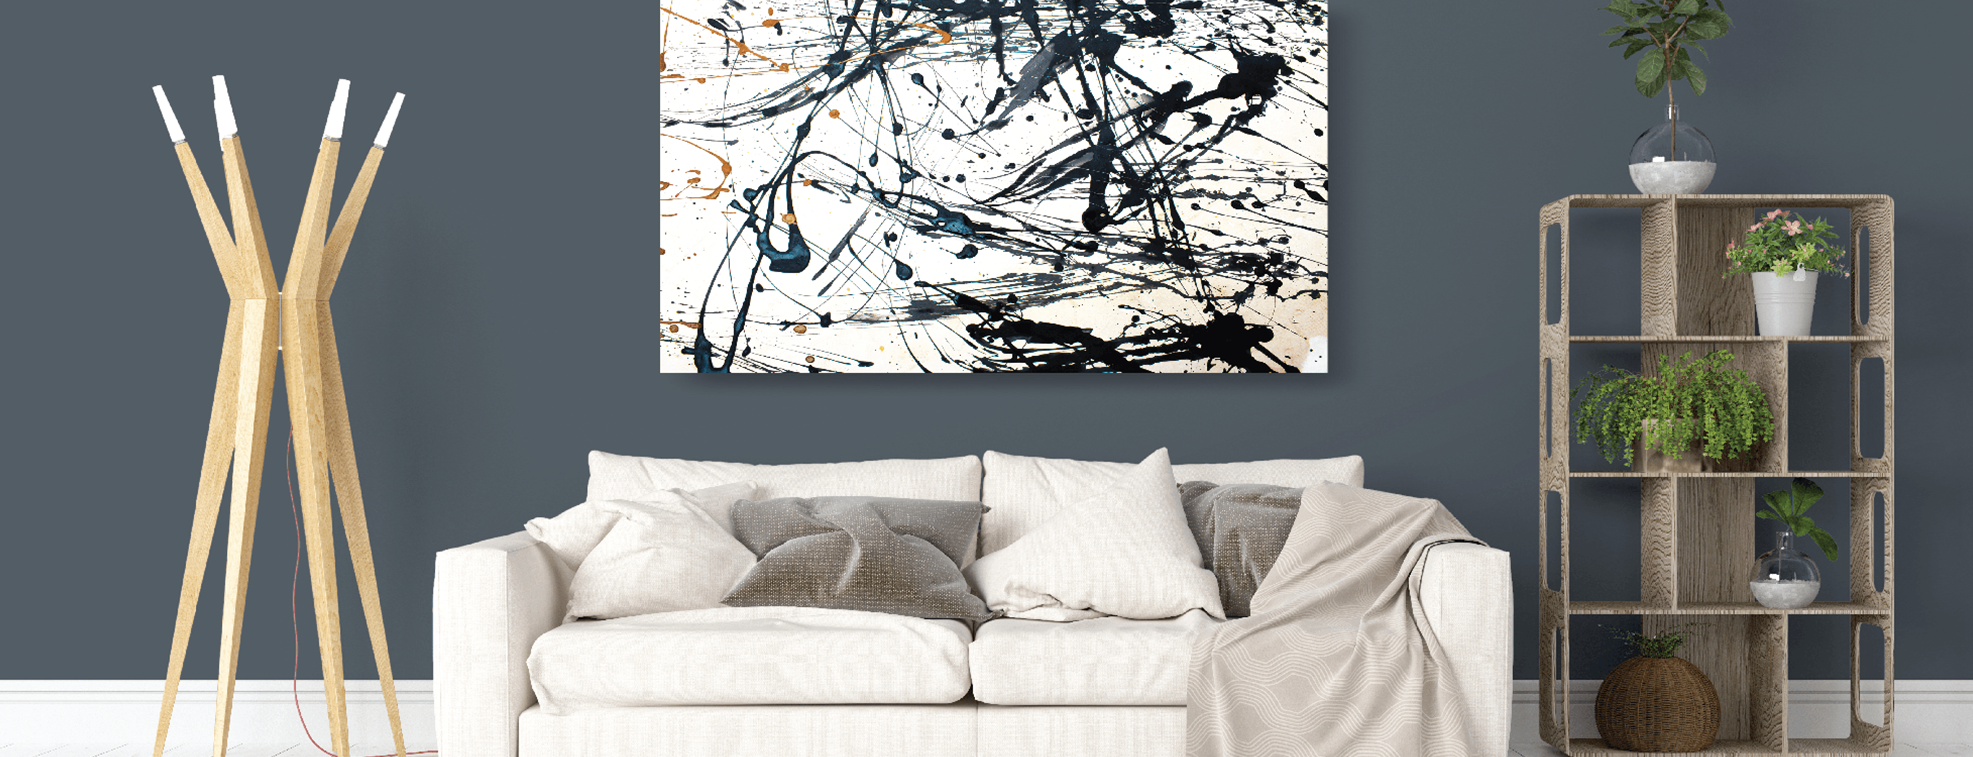 Photo Canvas for Your Interior